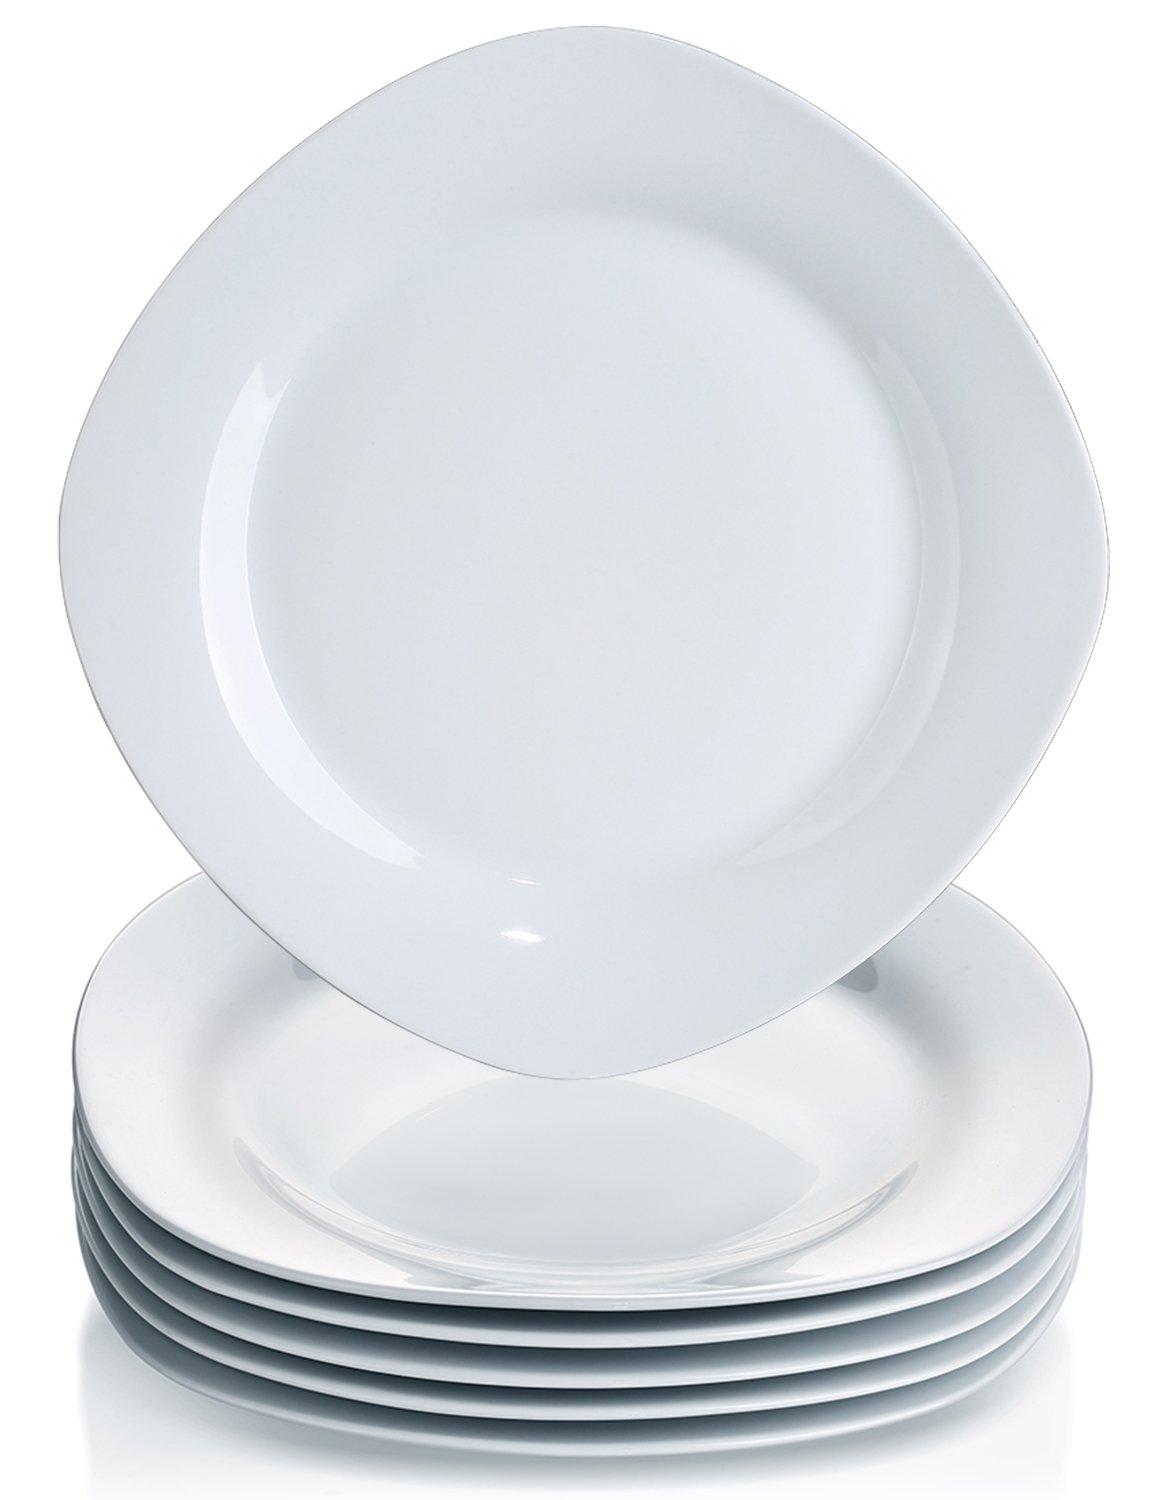 YHY 6 Pcs 10.5-inch Porcelain Dinner Plates Square Round Serving Plate Set  sc 1 st  Amazon.com & Best Rated in Dinner Plates u0026 Helpful Customer Reviews - Amazon.com